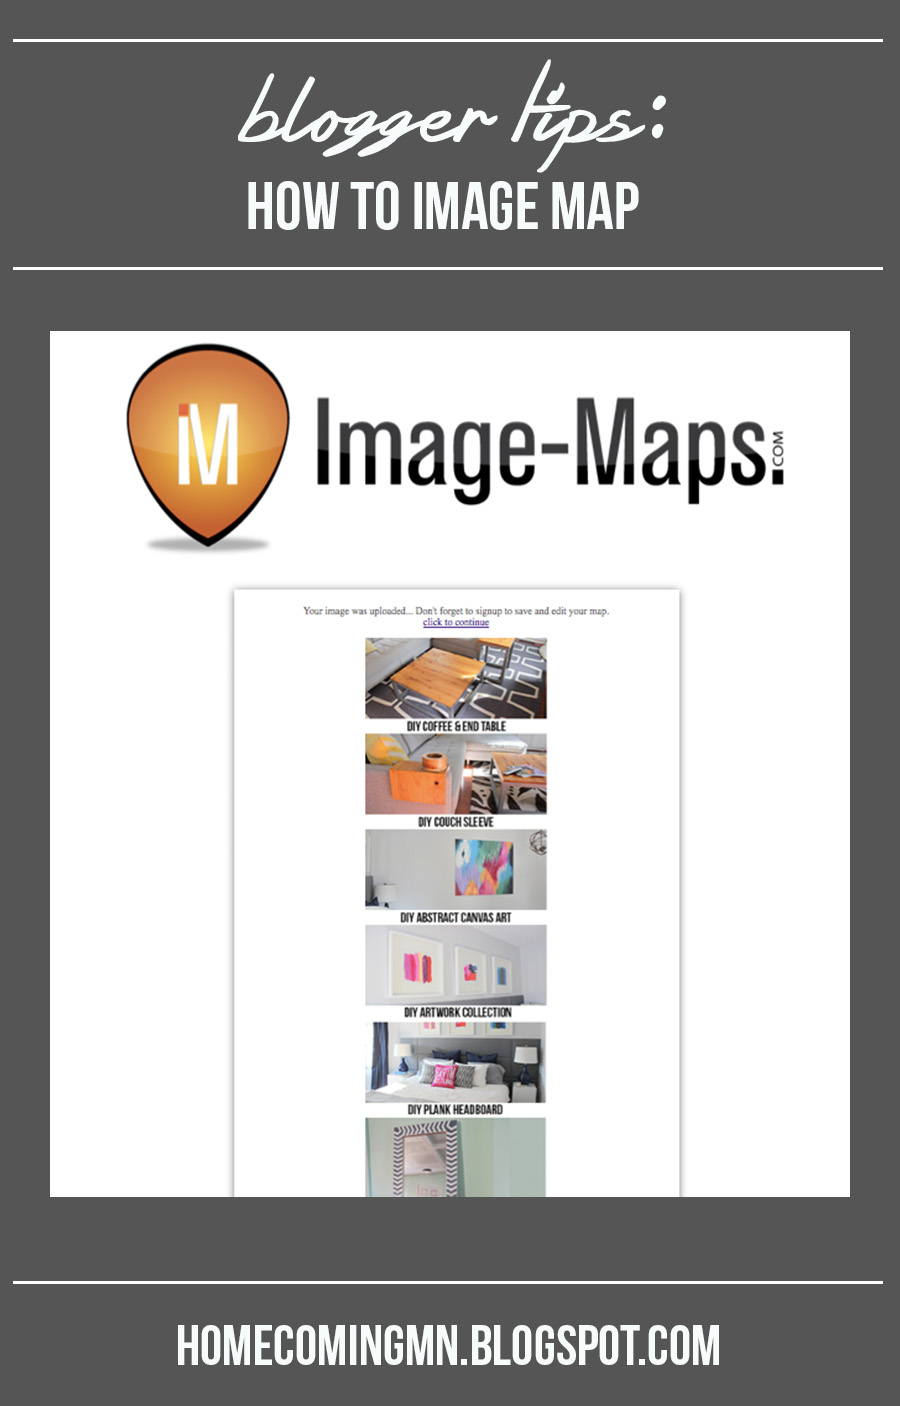 How to Image Map | Home Coming for thegirlcreative.com